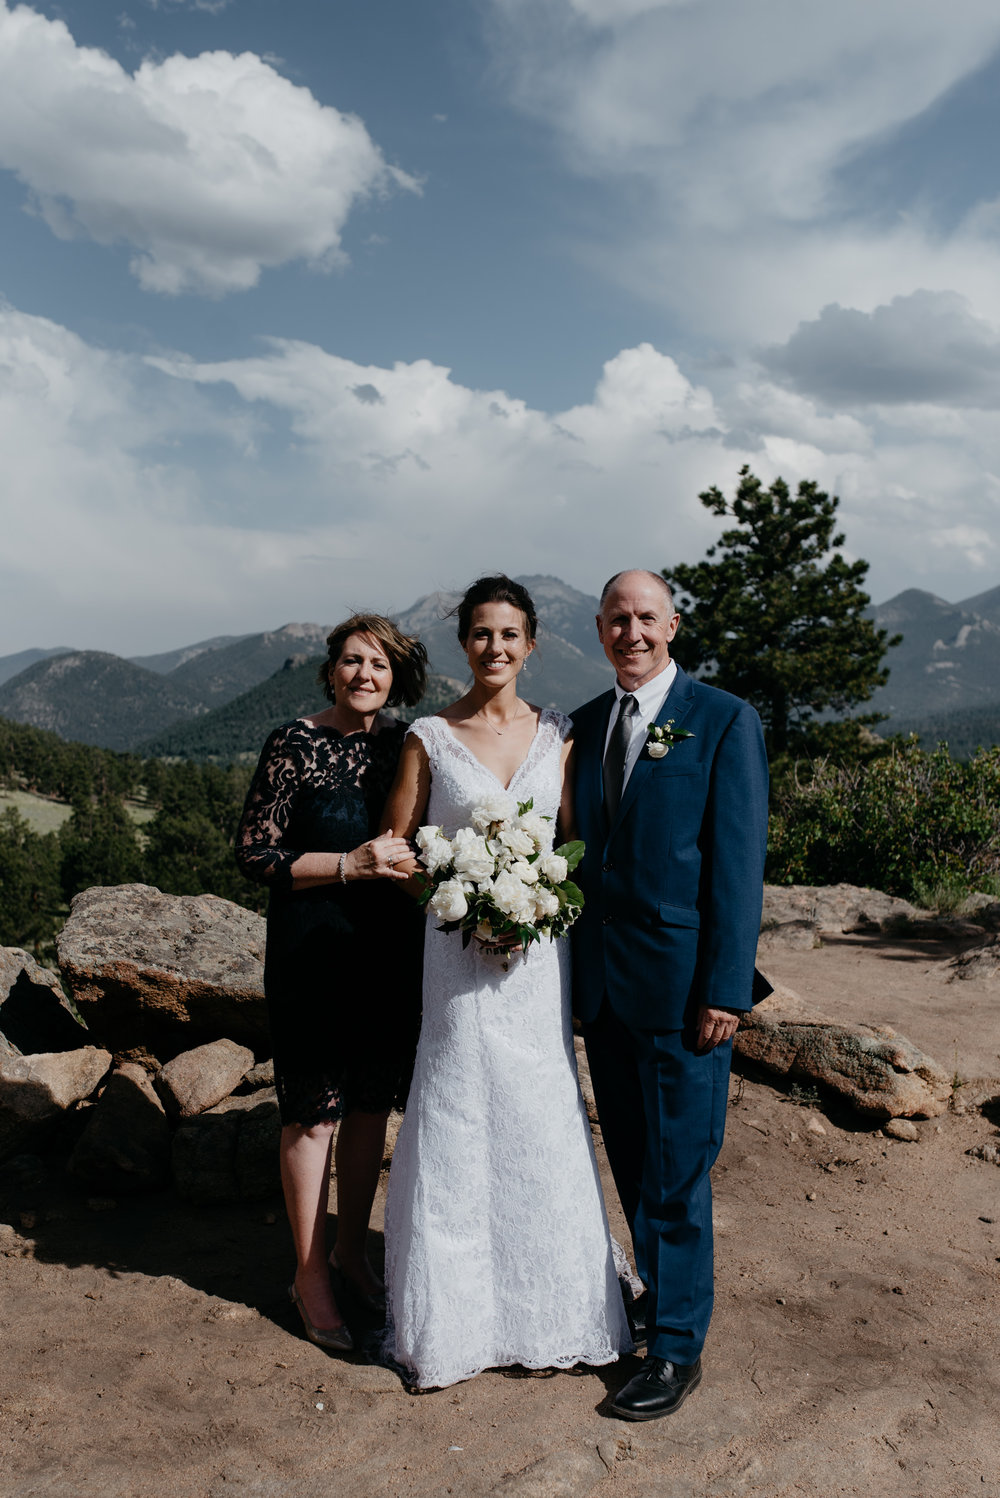 Family photos at Rocky Mountain National Park elopement. Wedding ceremony at 3M curve in Colorado.